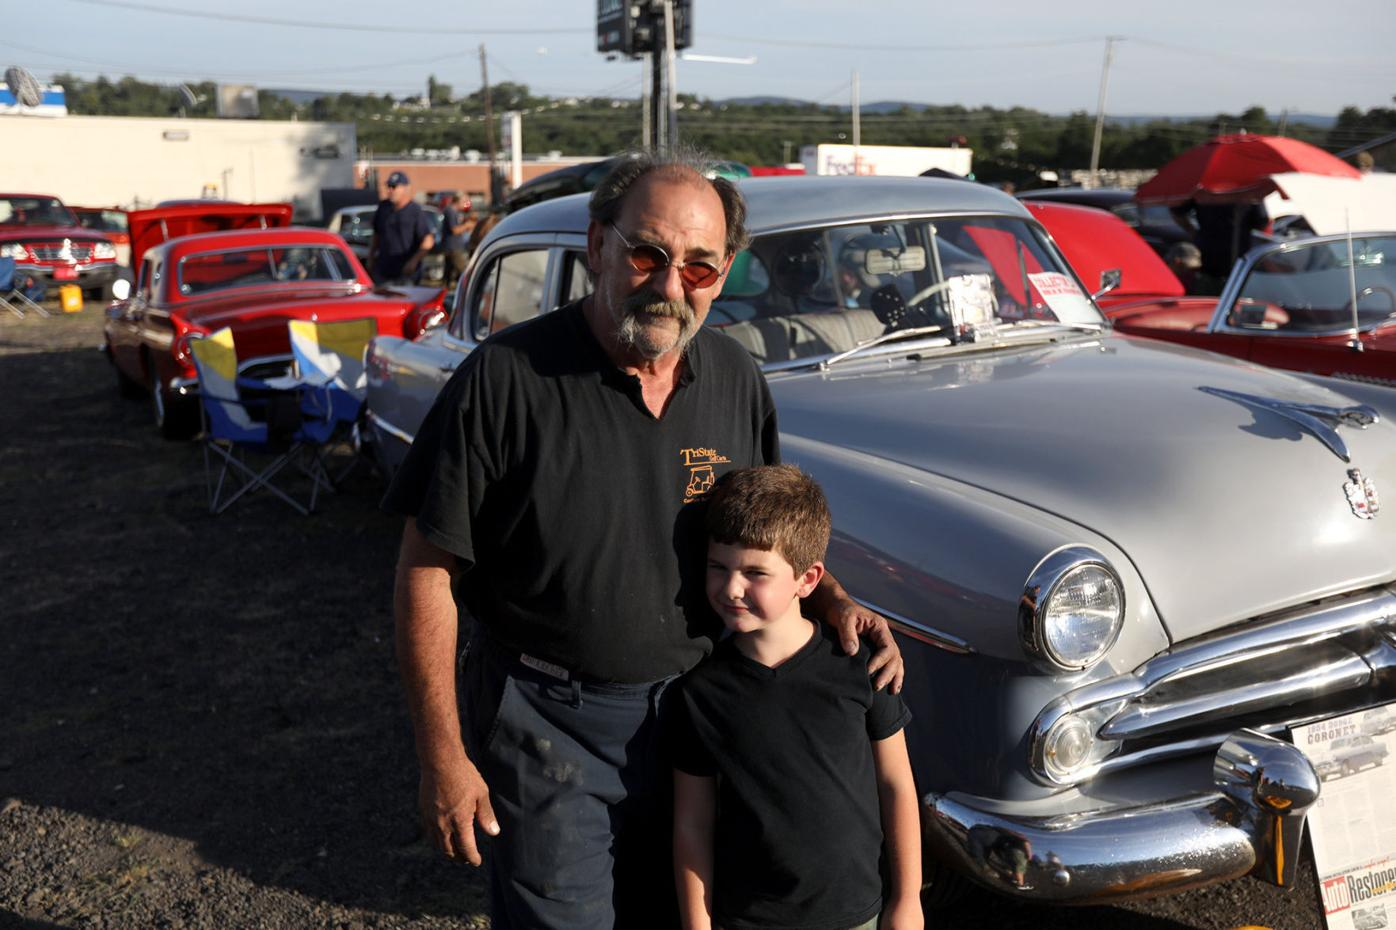 Out & About at the Gears & Guns Car Show